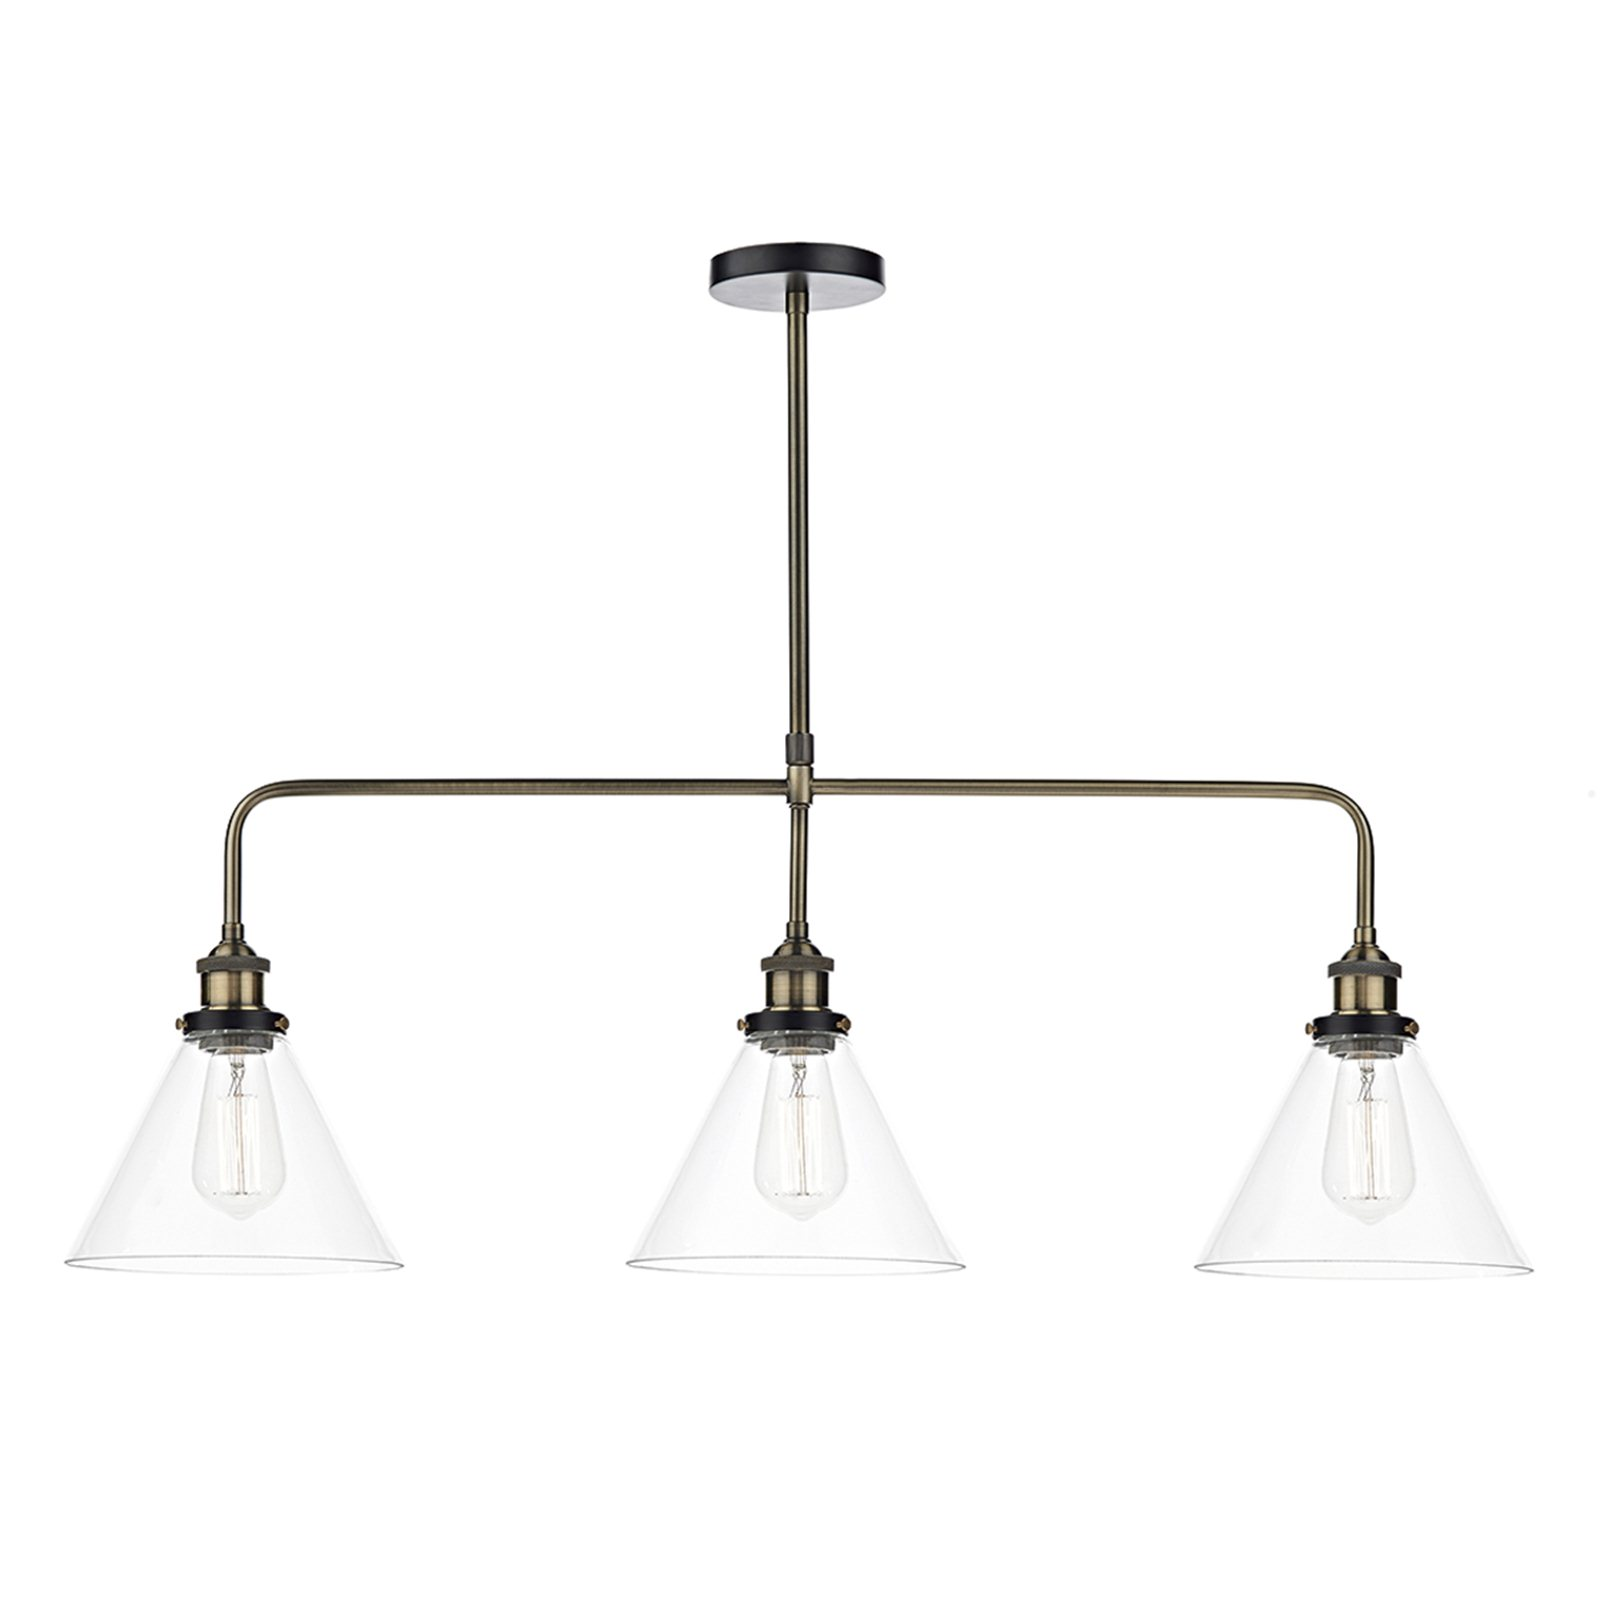 Chester 3 Bar Pendant with glass shades Image